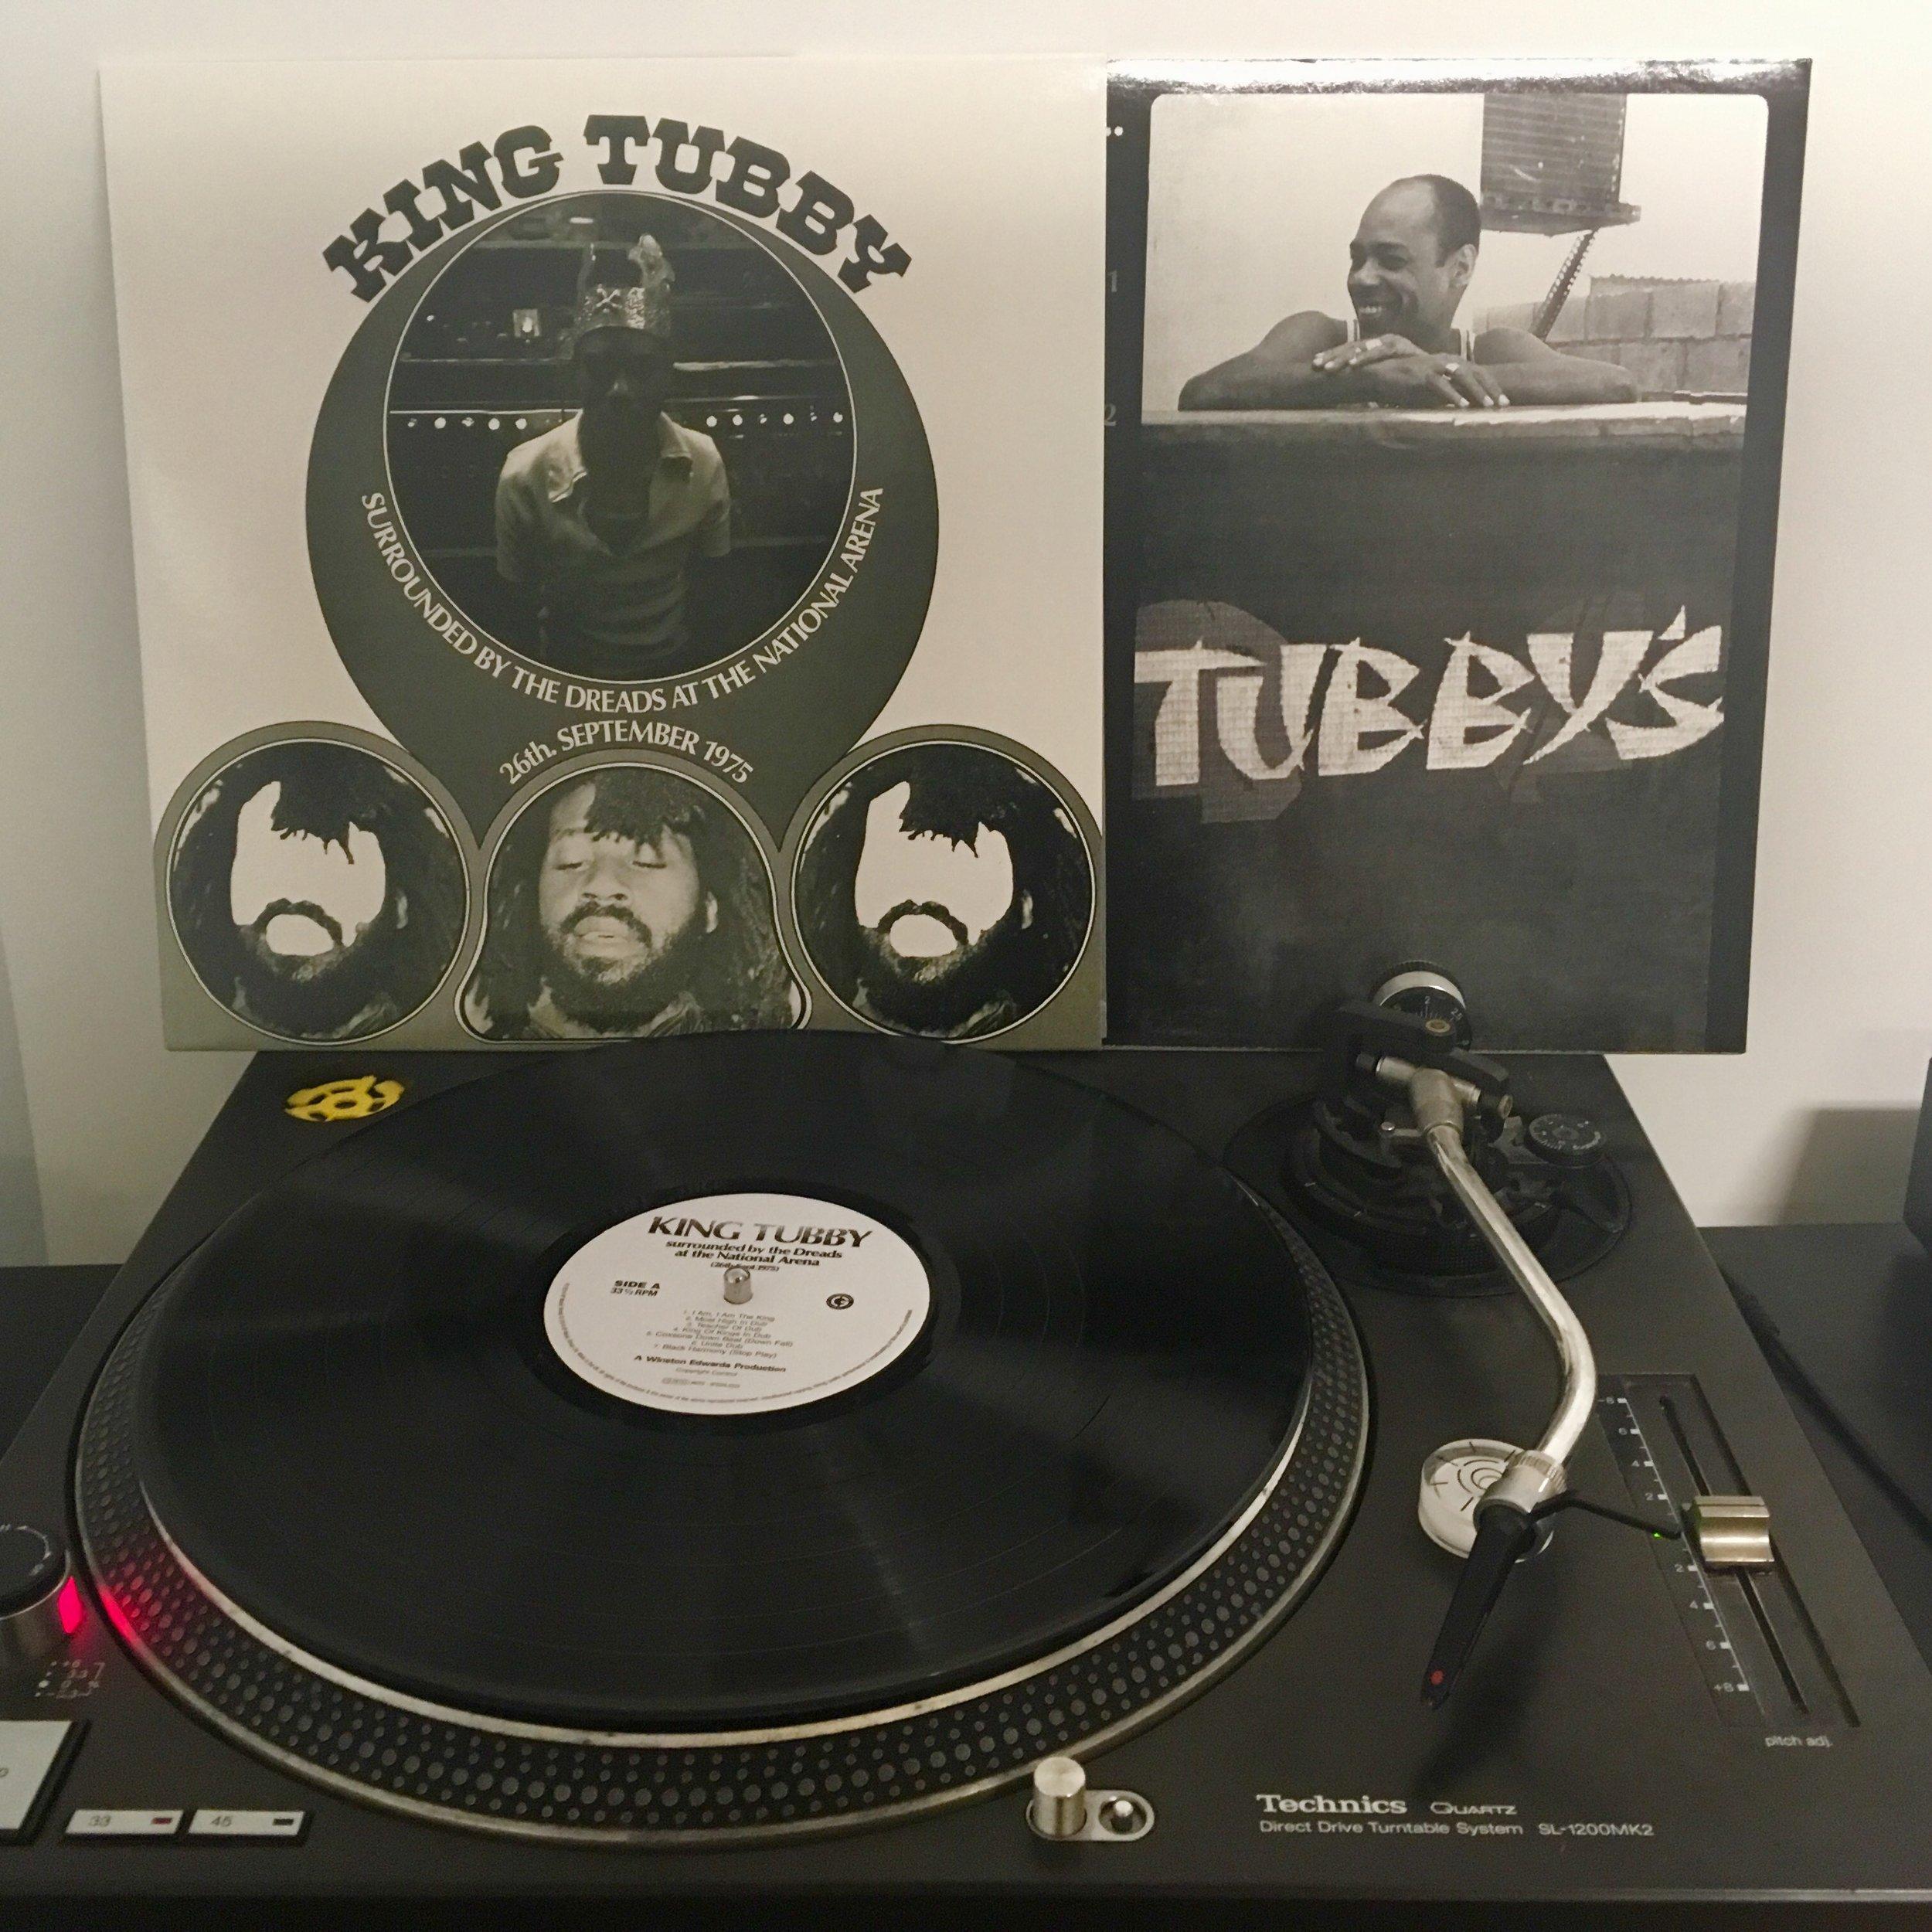 KING TUBBY   Surrounded By The Dreads At The National Arena   Artist Link :  http://www.factmag.com/2015/05/19/king-tubby-beginners-guide-dub-reggae/ L abel : VP Records